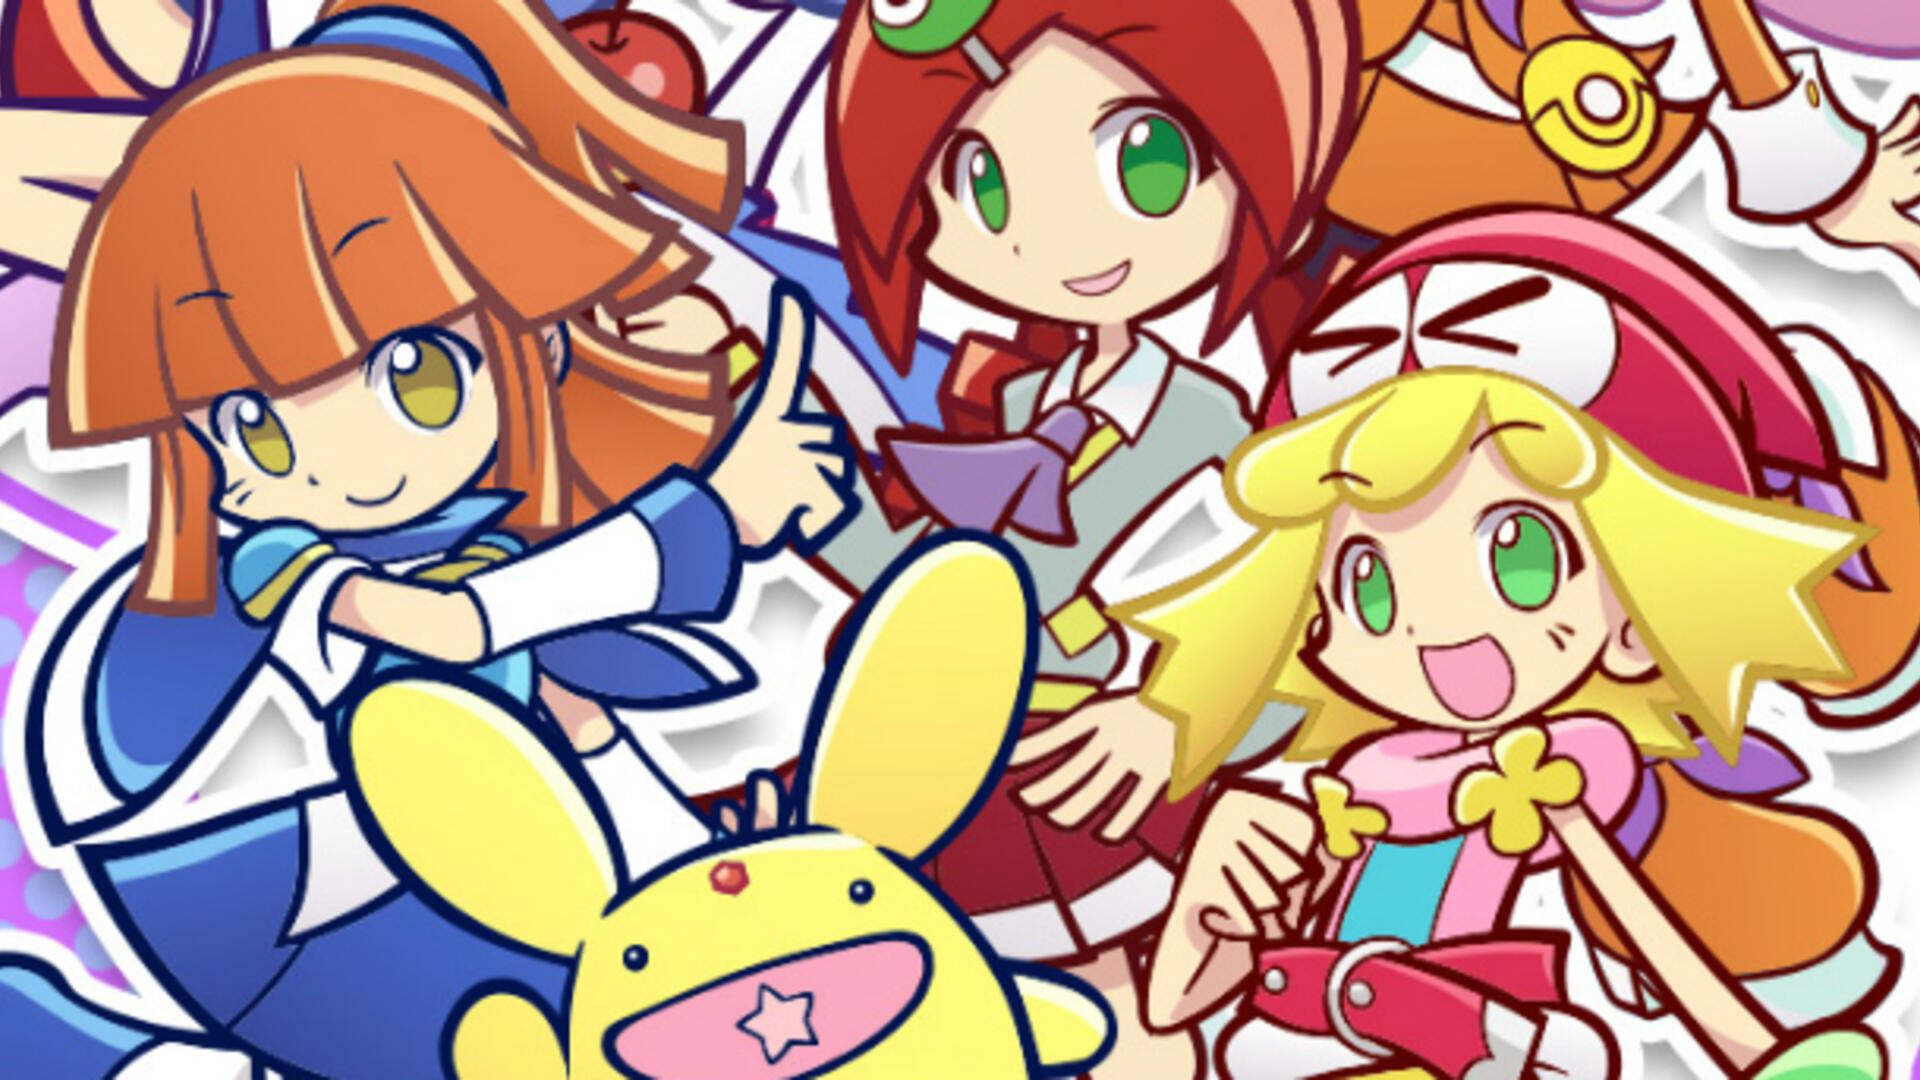 Puyo Puyo Tetris Is the Latest Sega Game to Be Hit With Post-Launch Streaming Guidelines